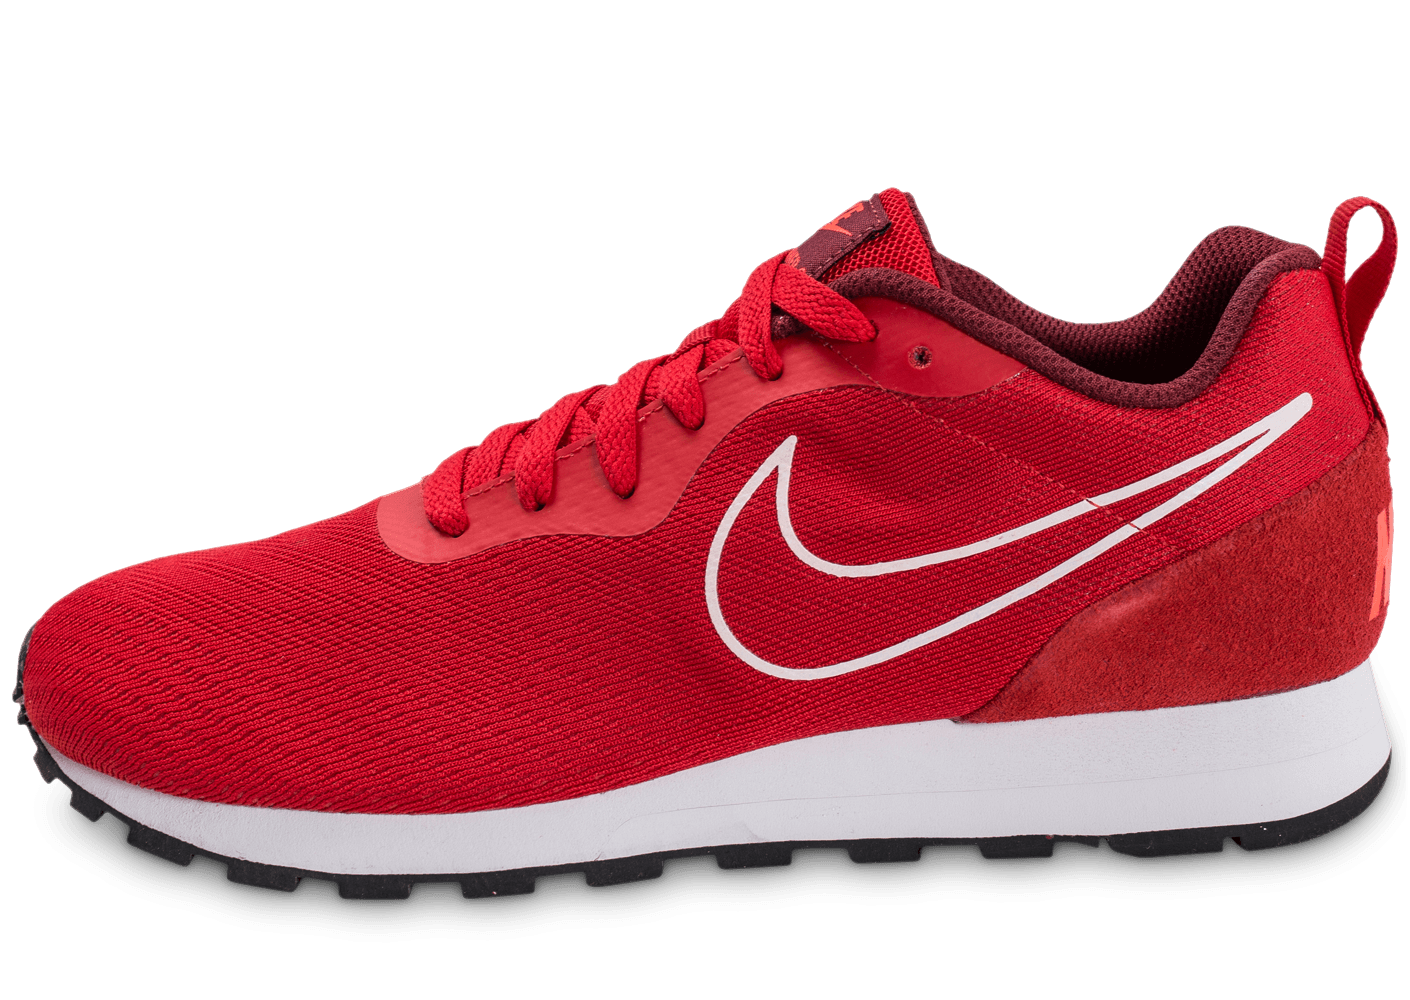 a8d2a5d2af00 Nike MD Runner 2 Breathe rouge - Chaussures Baskets homme - Chausport